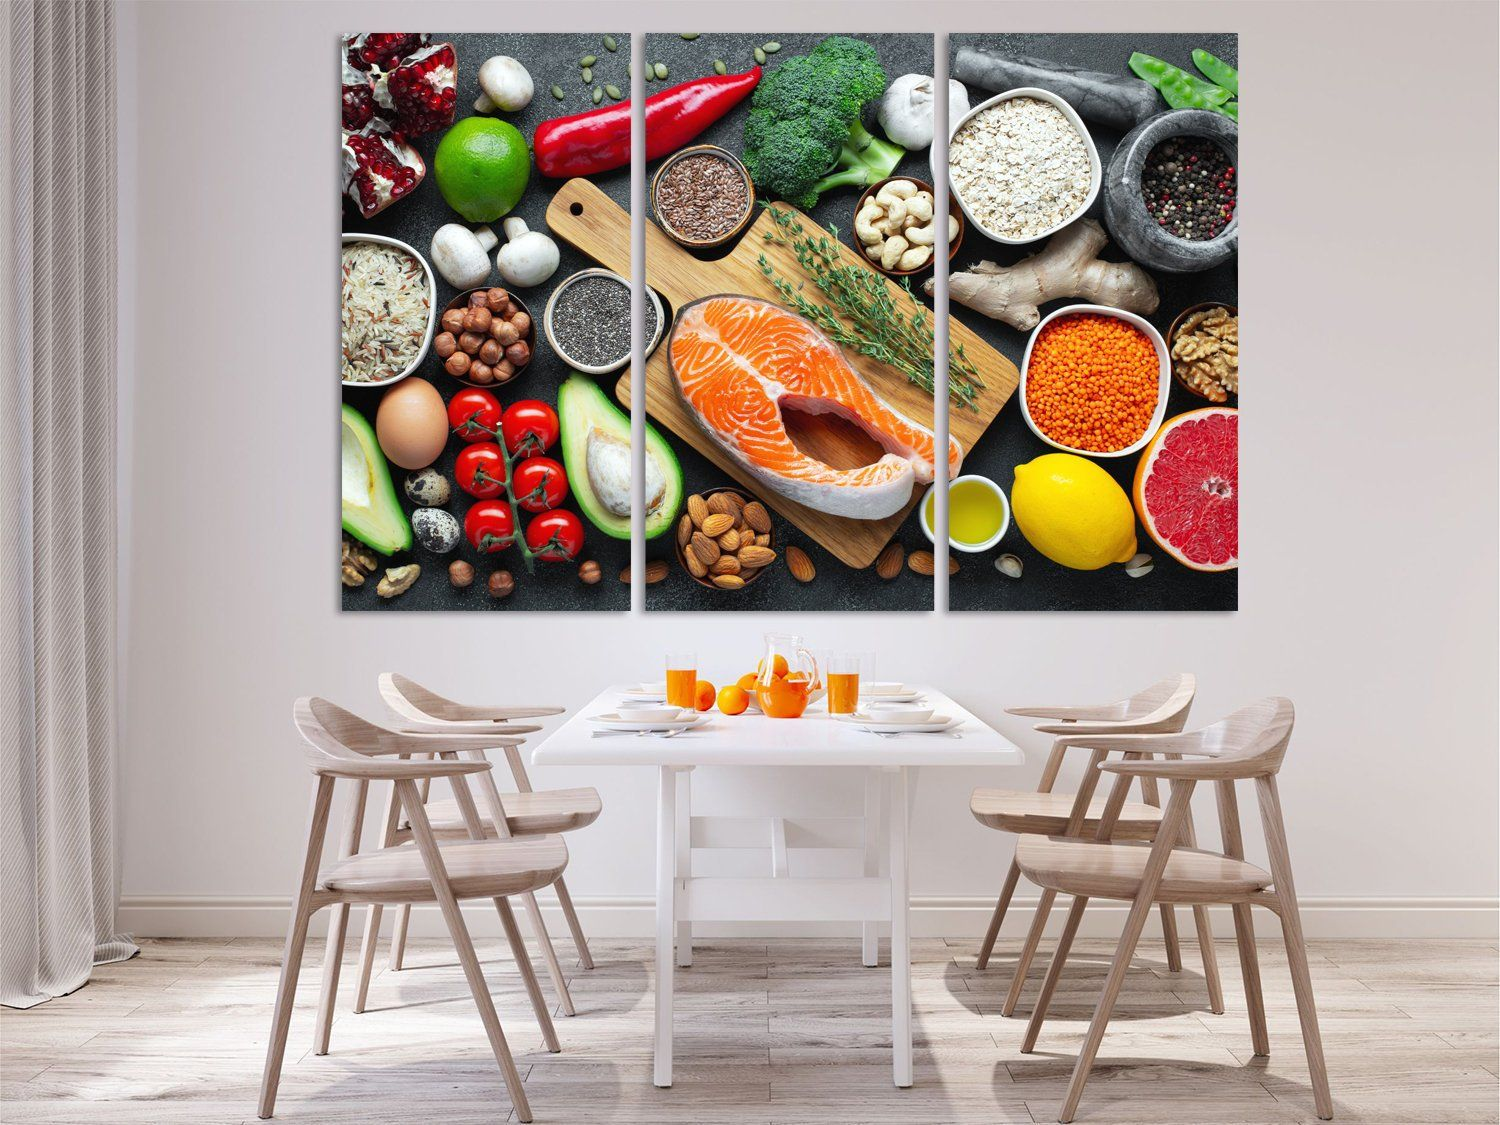 Product Photography Spice Rack Kitchen Wall Decor Extra Large Wall Art Canvas Extralargewalldecor Extral Food Wall Art Kitchen Wall Art Large Canvas Wall Art